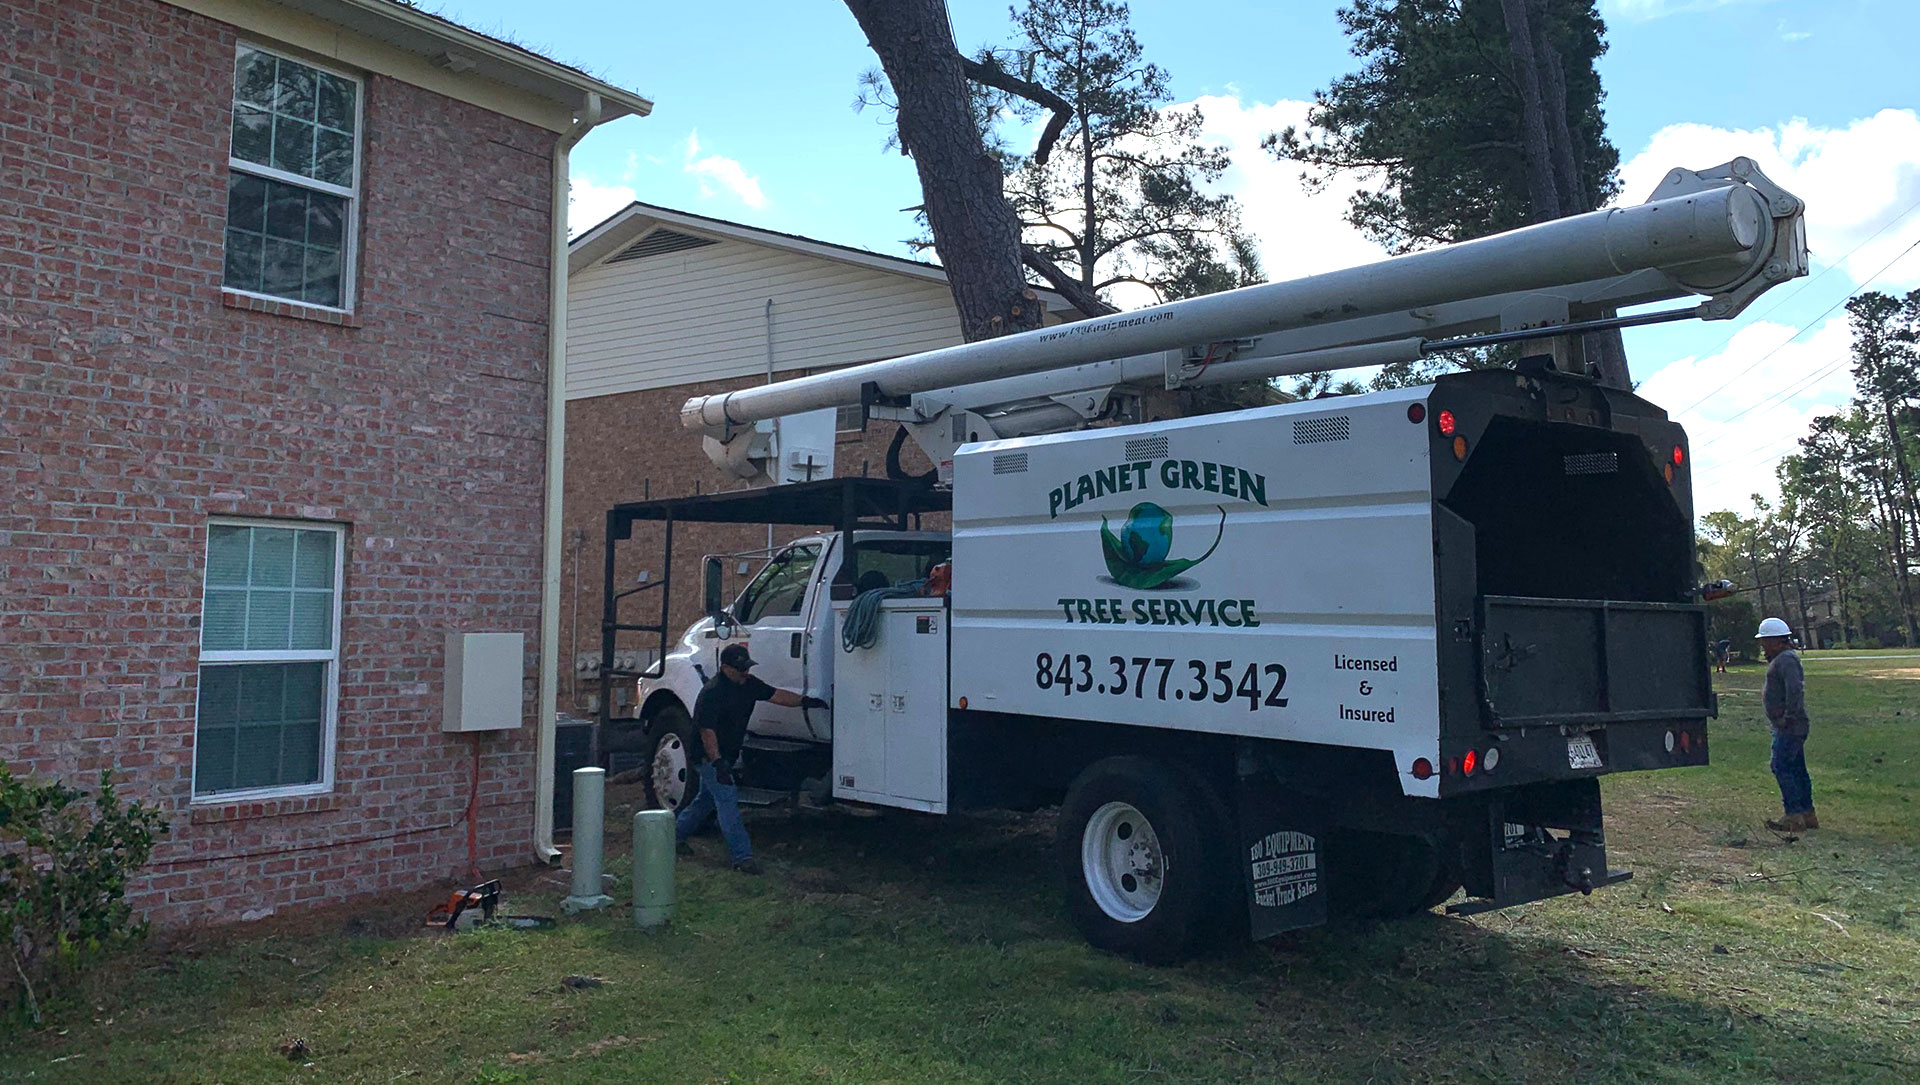 Slider2 - Planet Green Tree Service